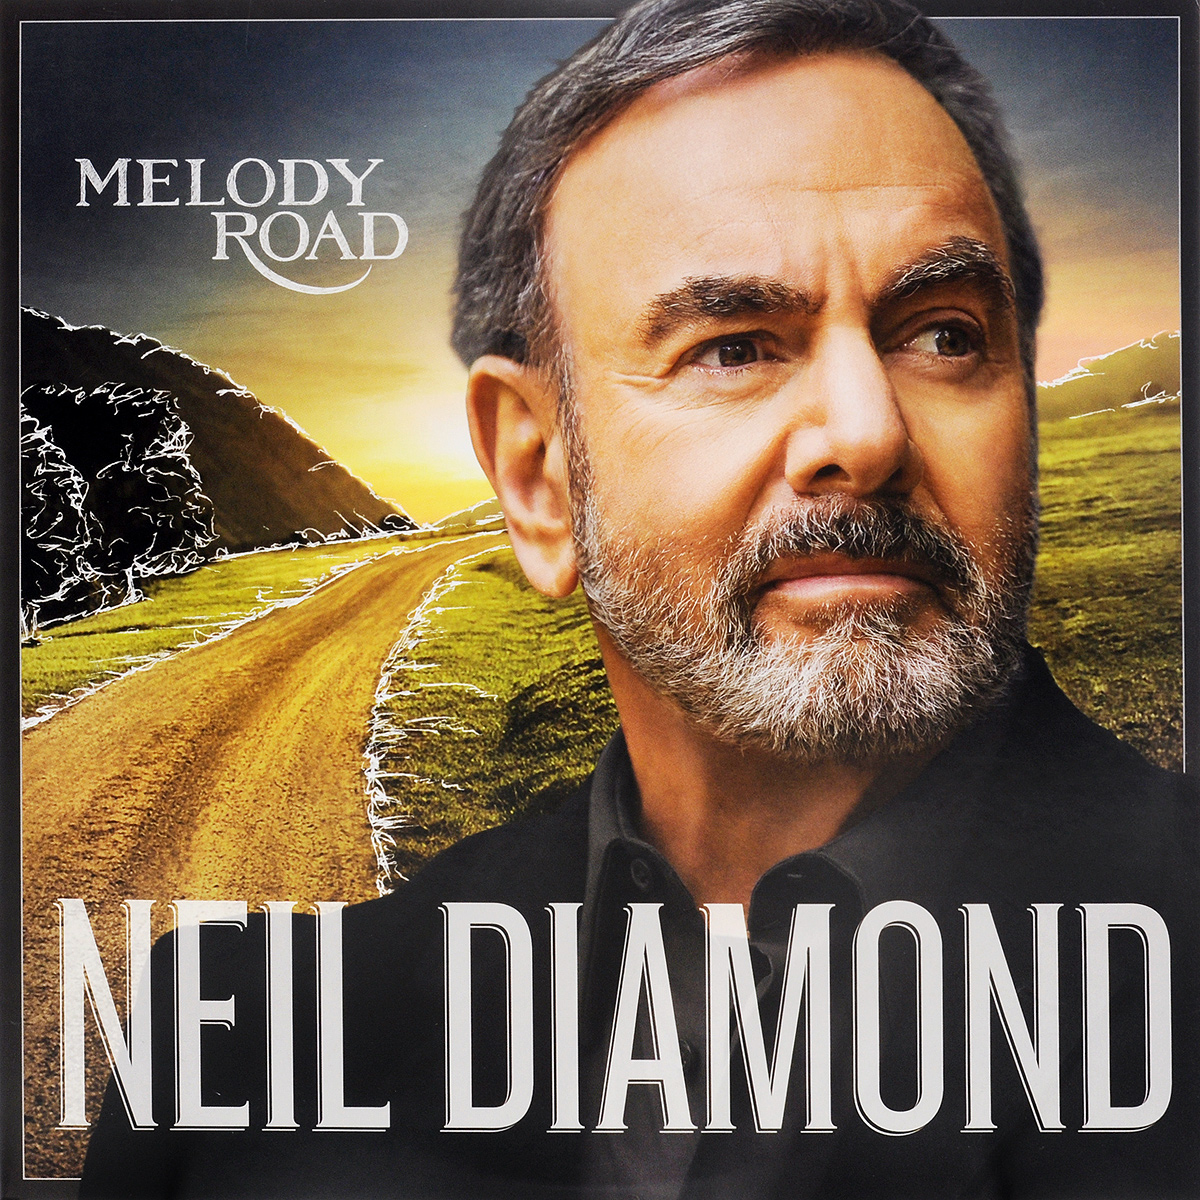 Фото - Нил Даймонд Neil Diamond. Melody Road (2 LP) нил даймонд neil diamond melody road